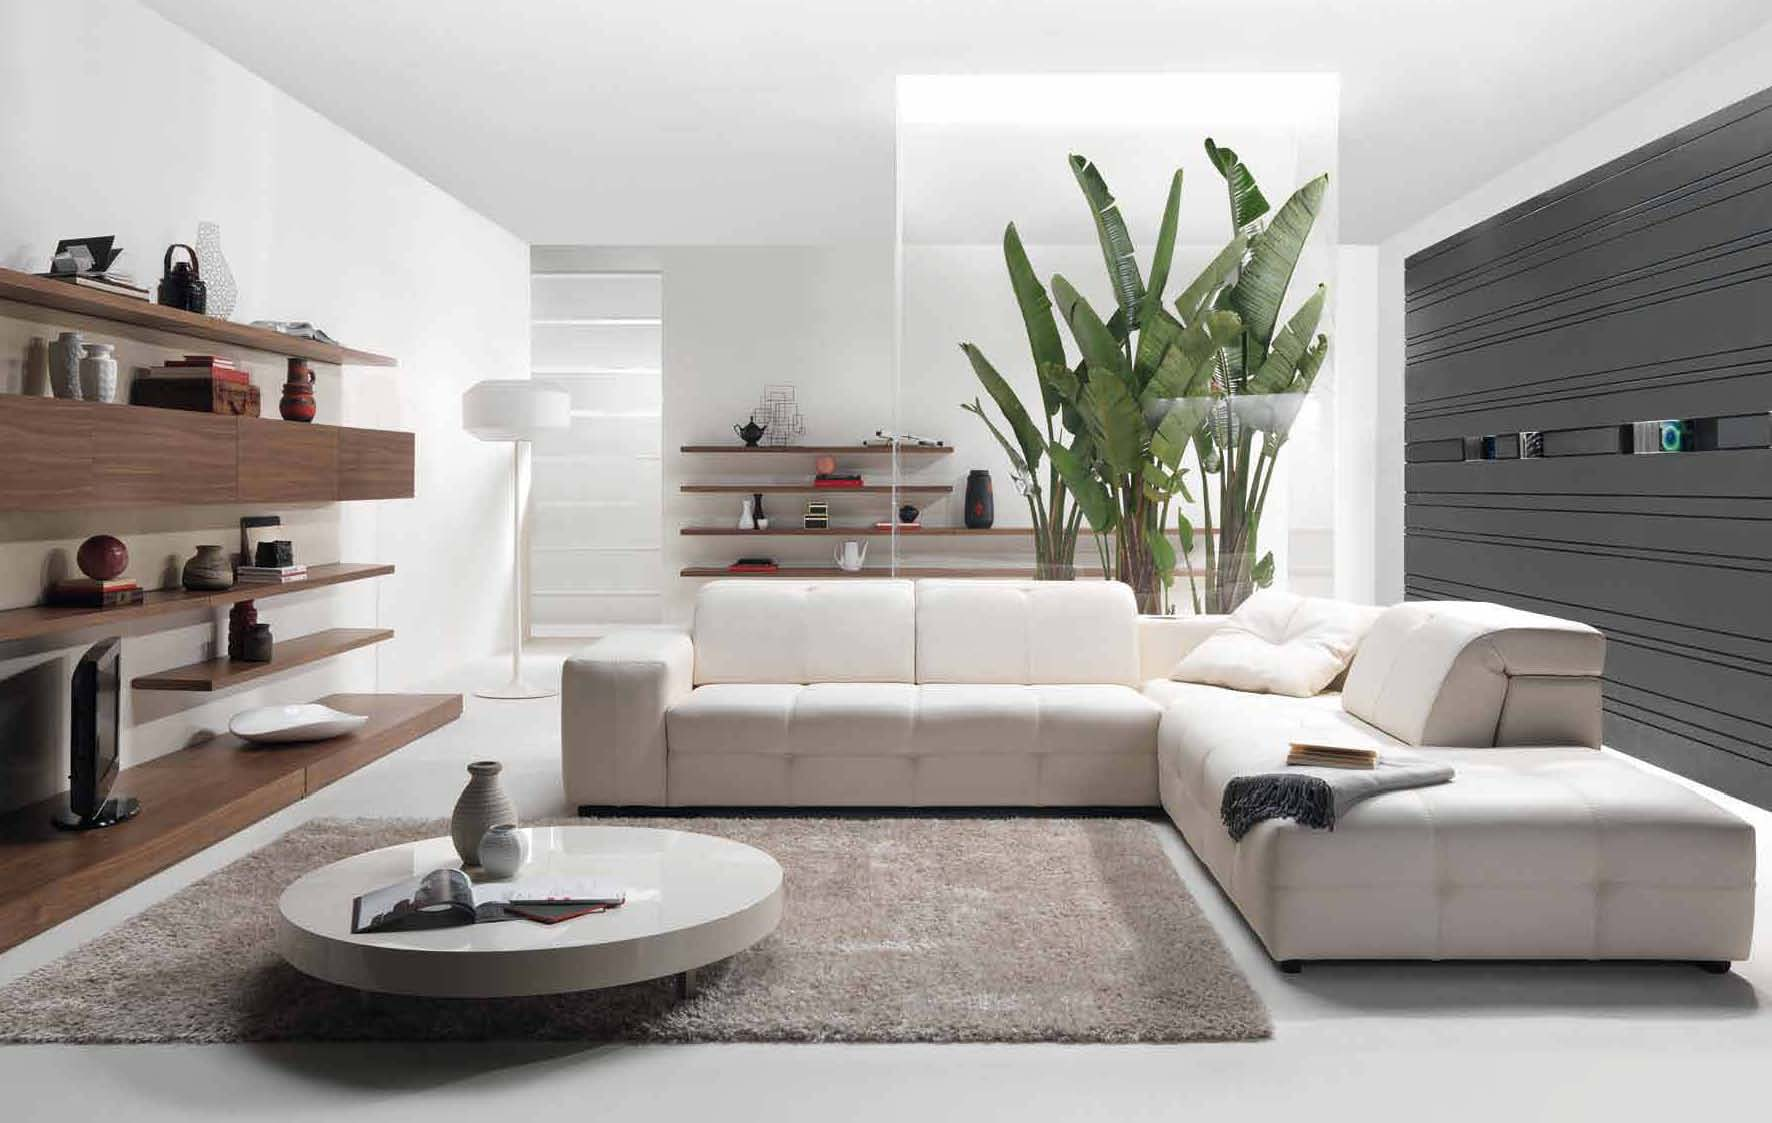 7 Modern Decorating Style Must-Haves - Decorilla